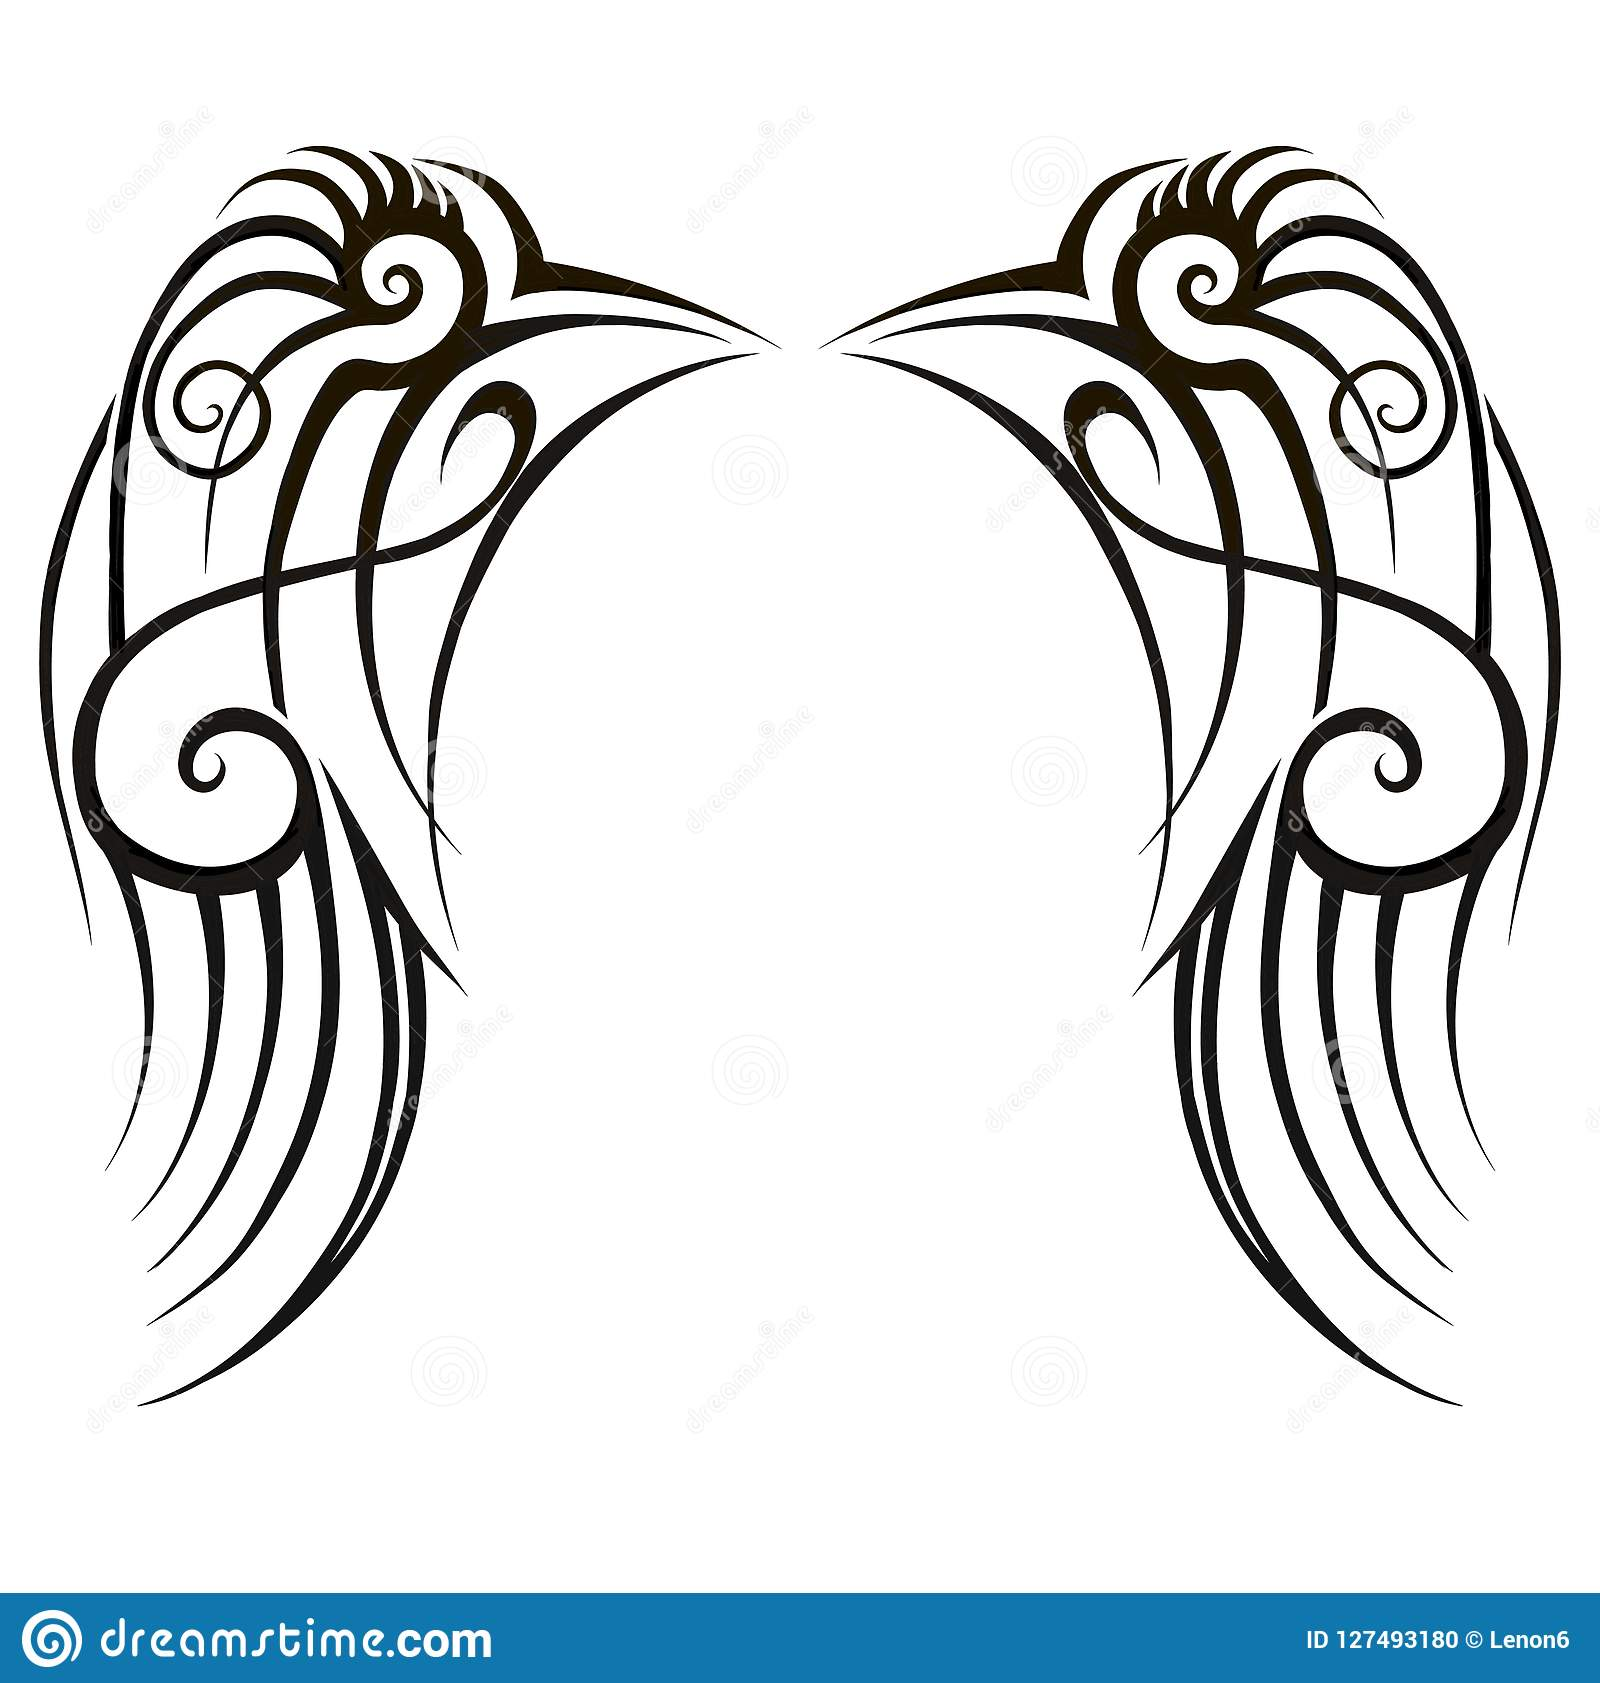 e9577d010 Tattoo art tribal designs. Abstract pattern logo design on white background.  Fashion ideas tattoos art pattern for woman and man body art.